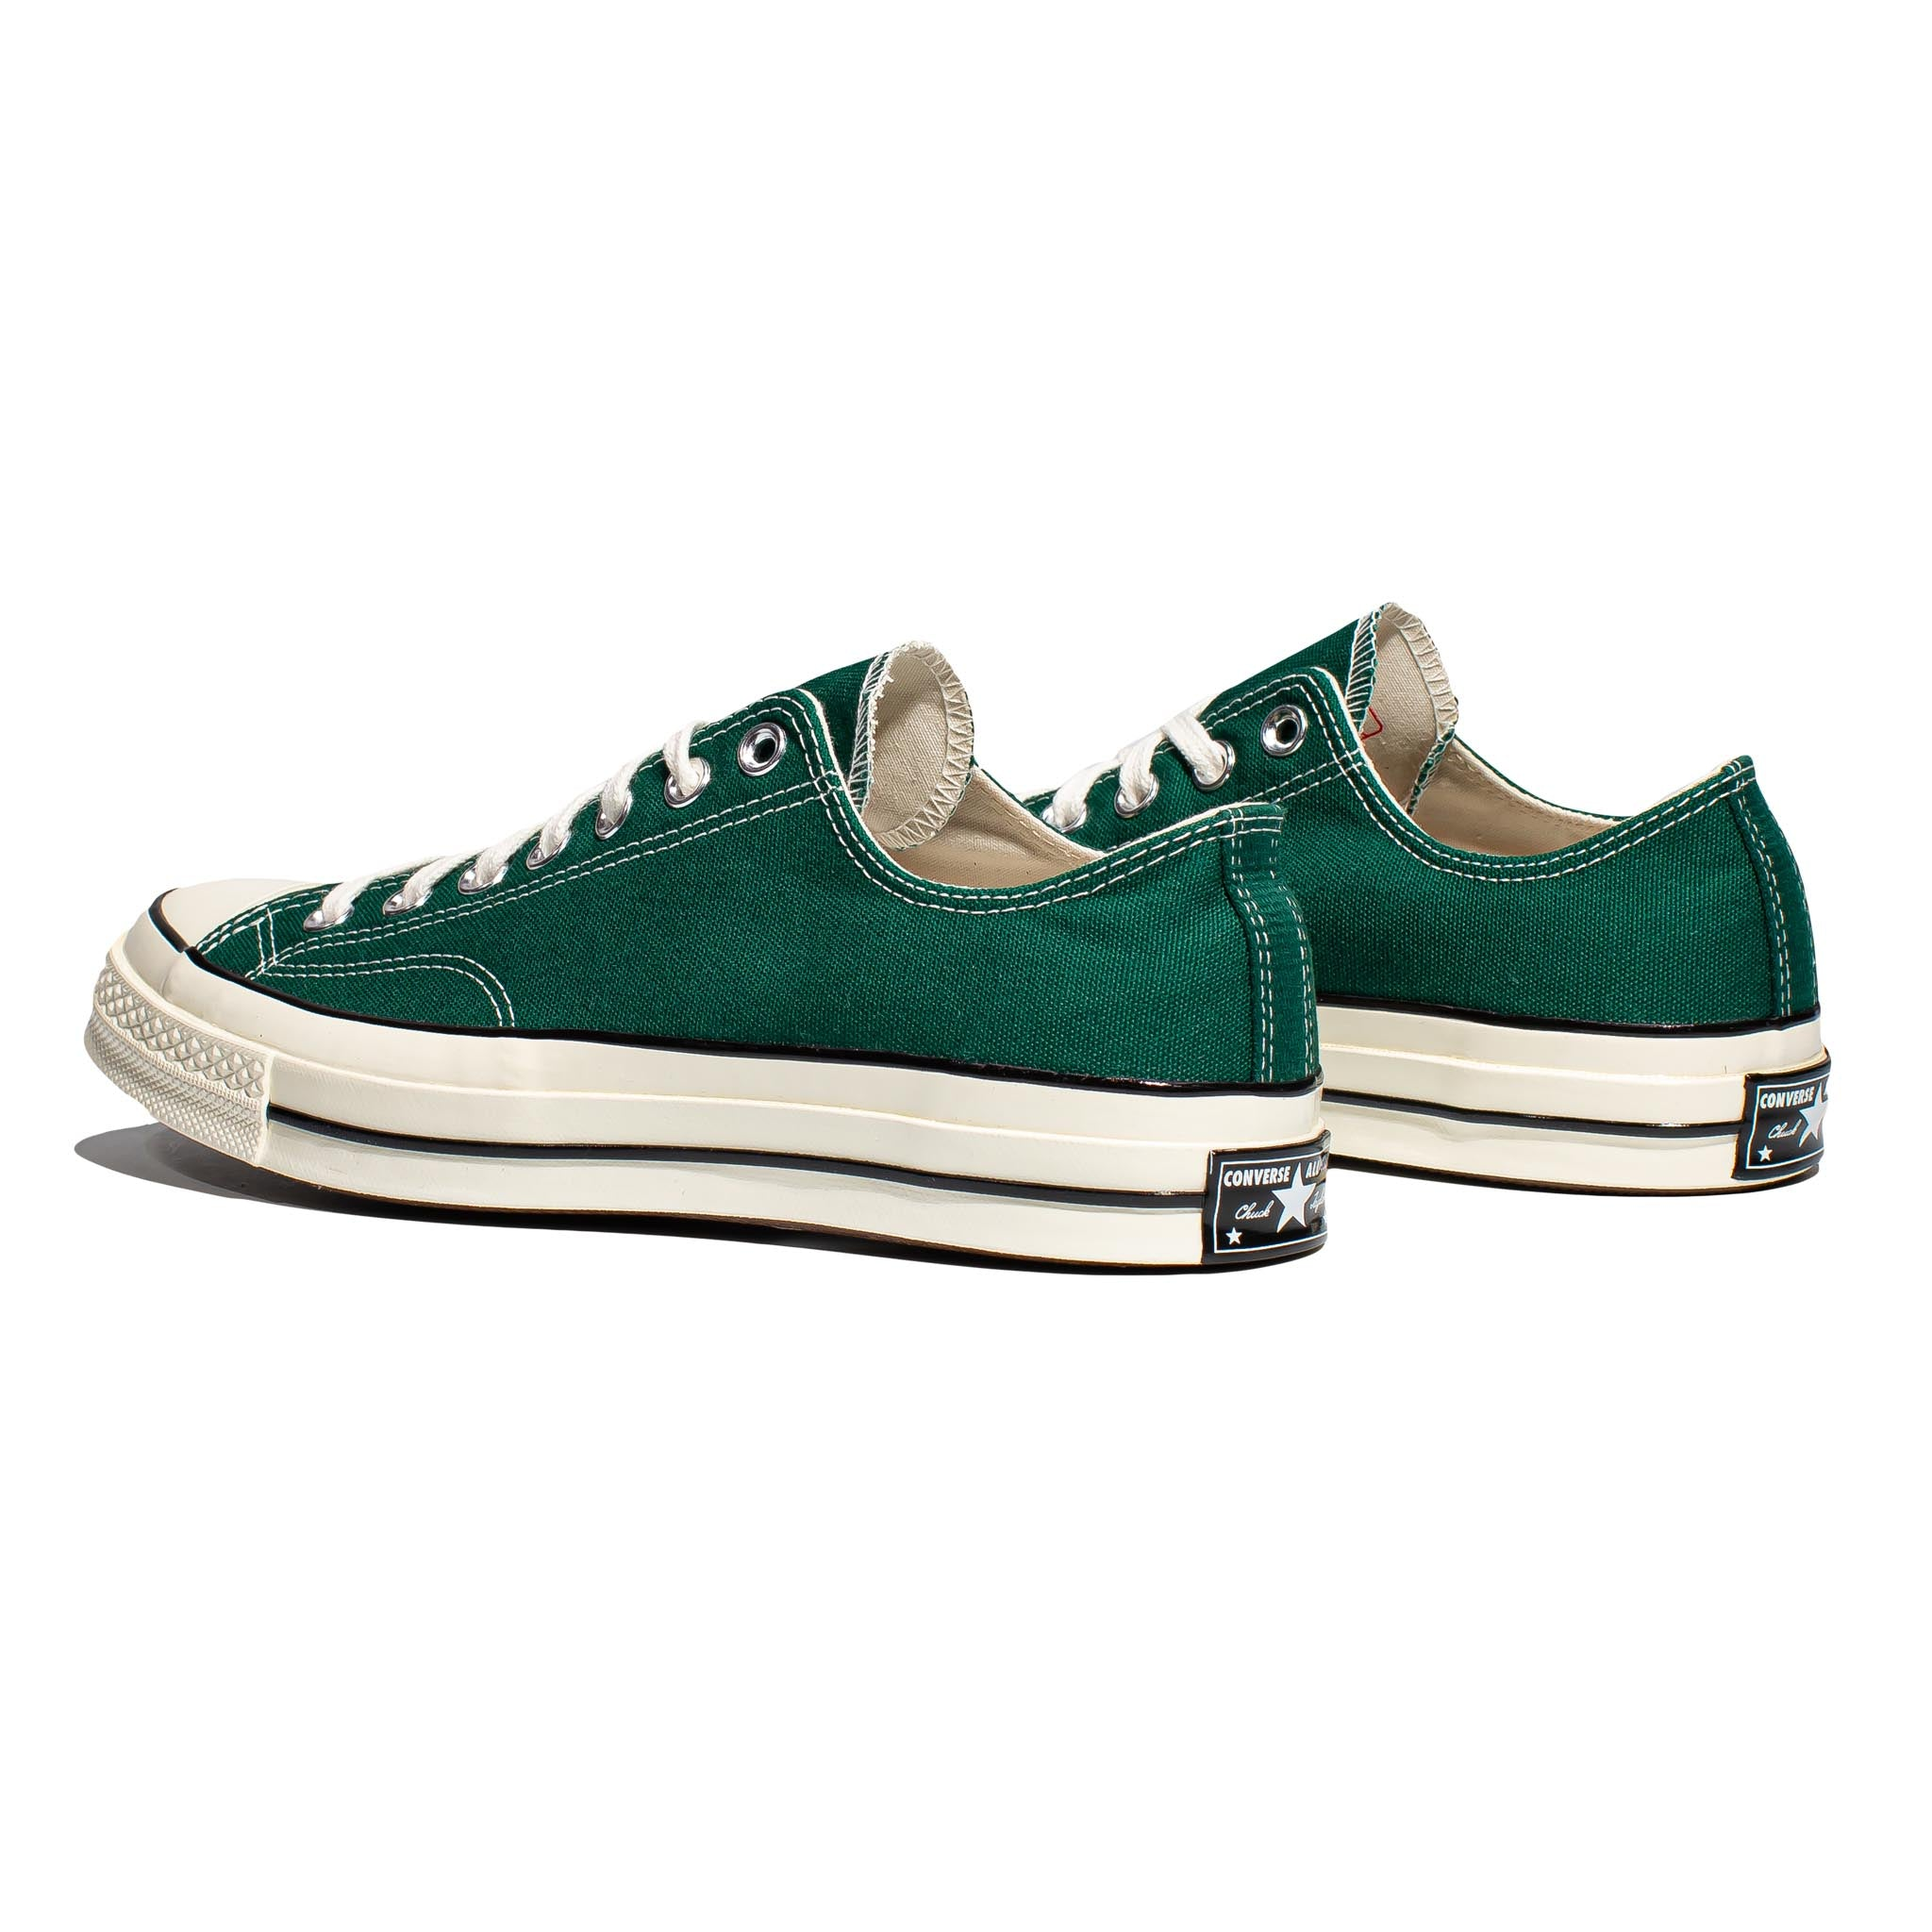 Converse Chuck 70 Low Midnight Clover